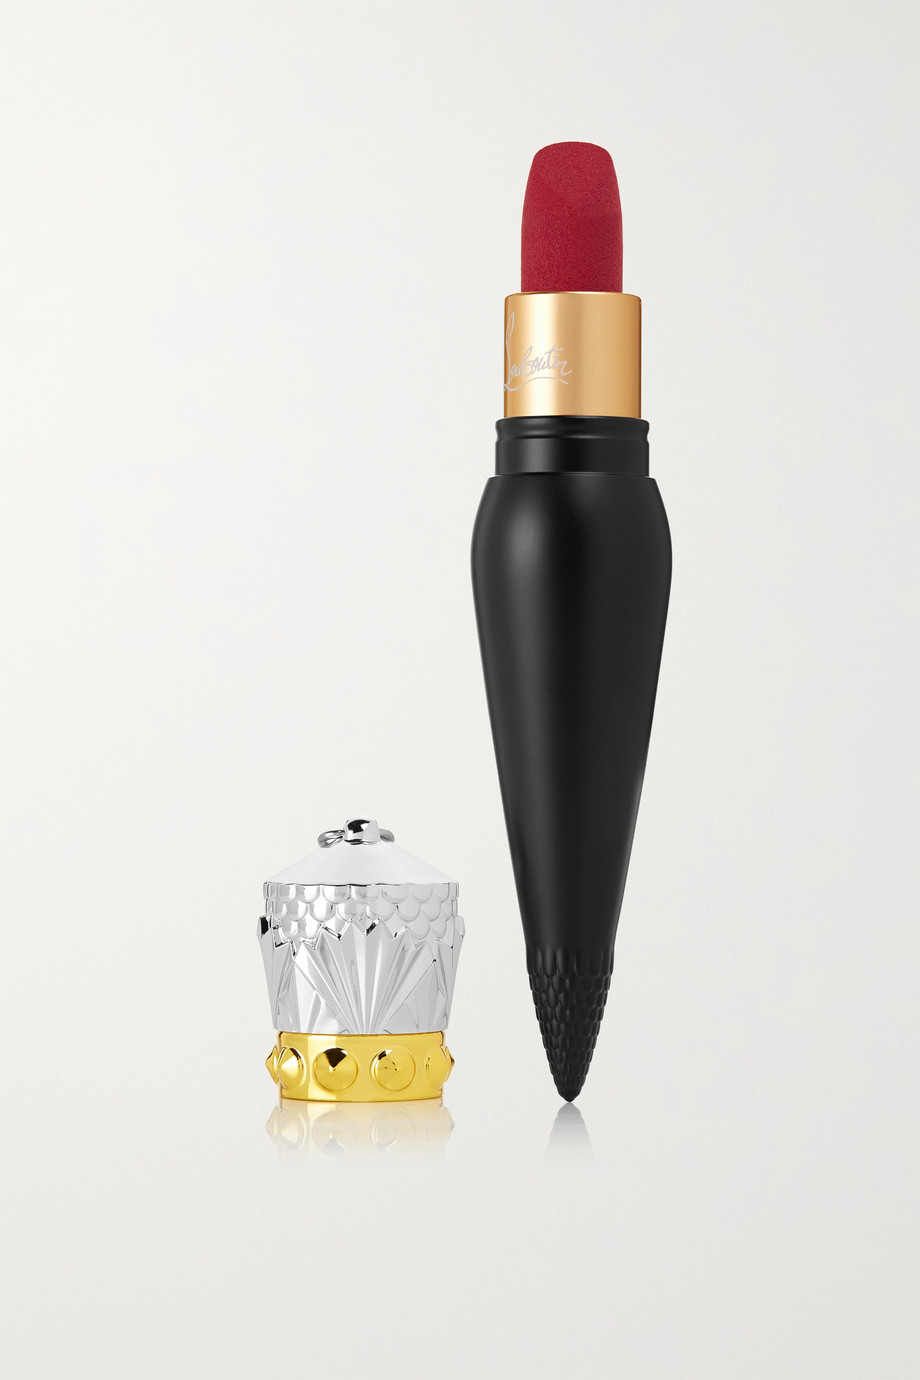 Christian Louboutin Beauty Velvet Matte Lip Colour - Justine